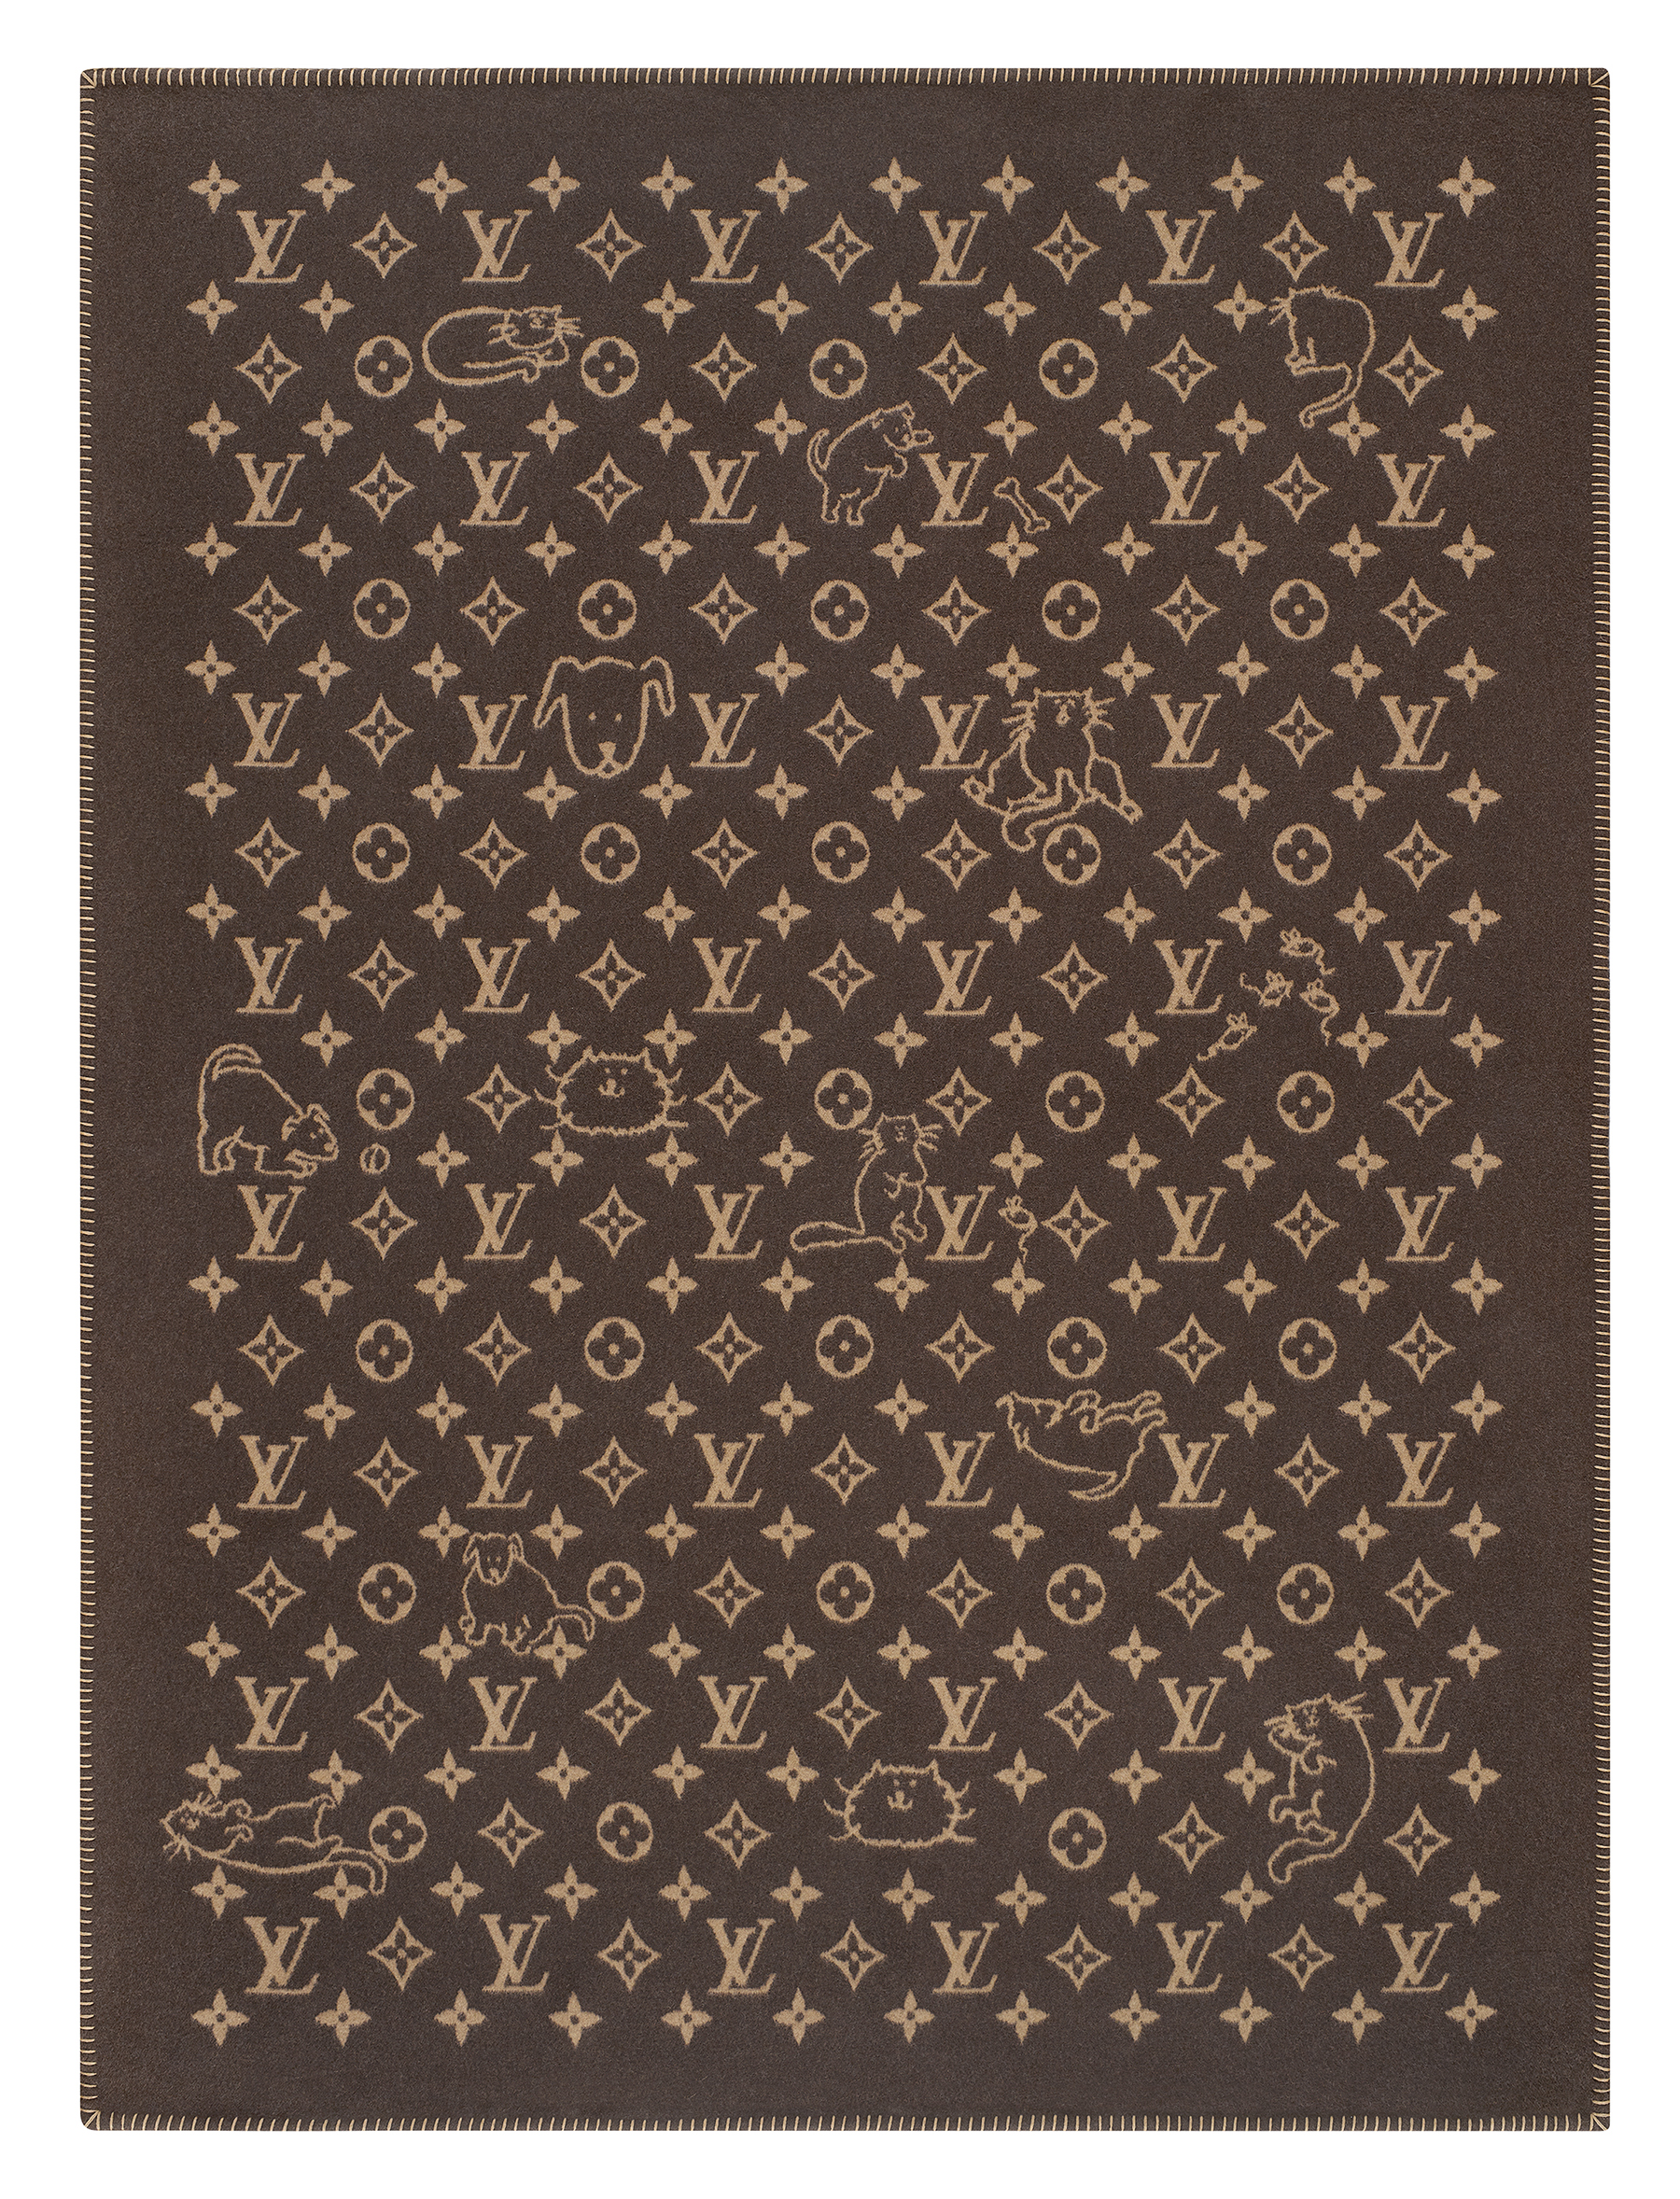 1fb993efddcc Cozy on Up. Keep warm this winter with a reversible lambswool blanket.  Credit  Grace Coddington x LV